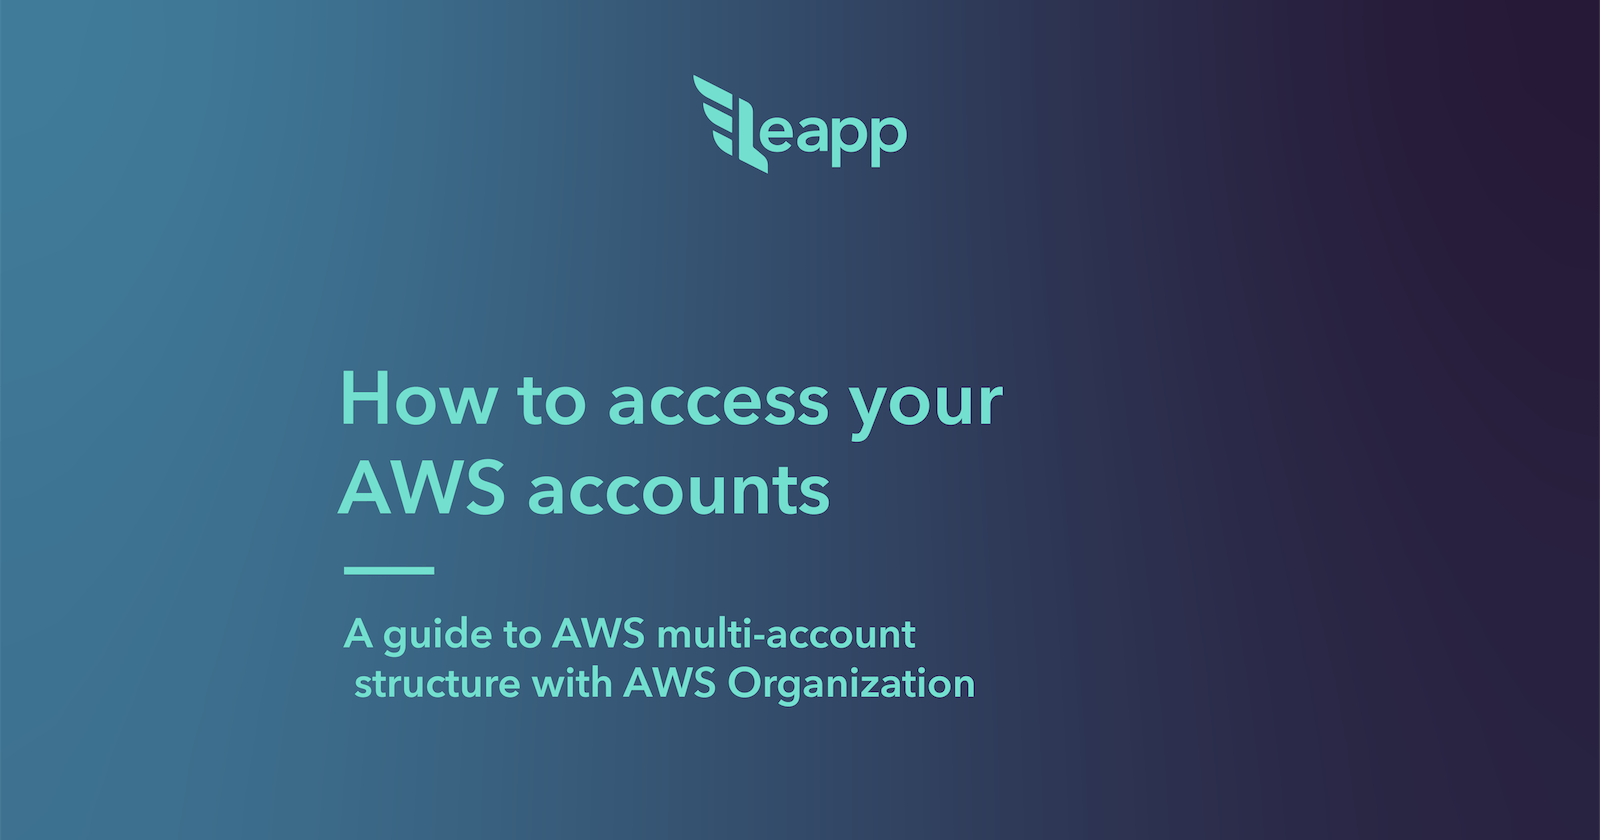 AWS multi-account structure with AWS Organization